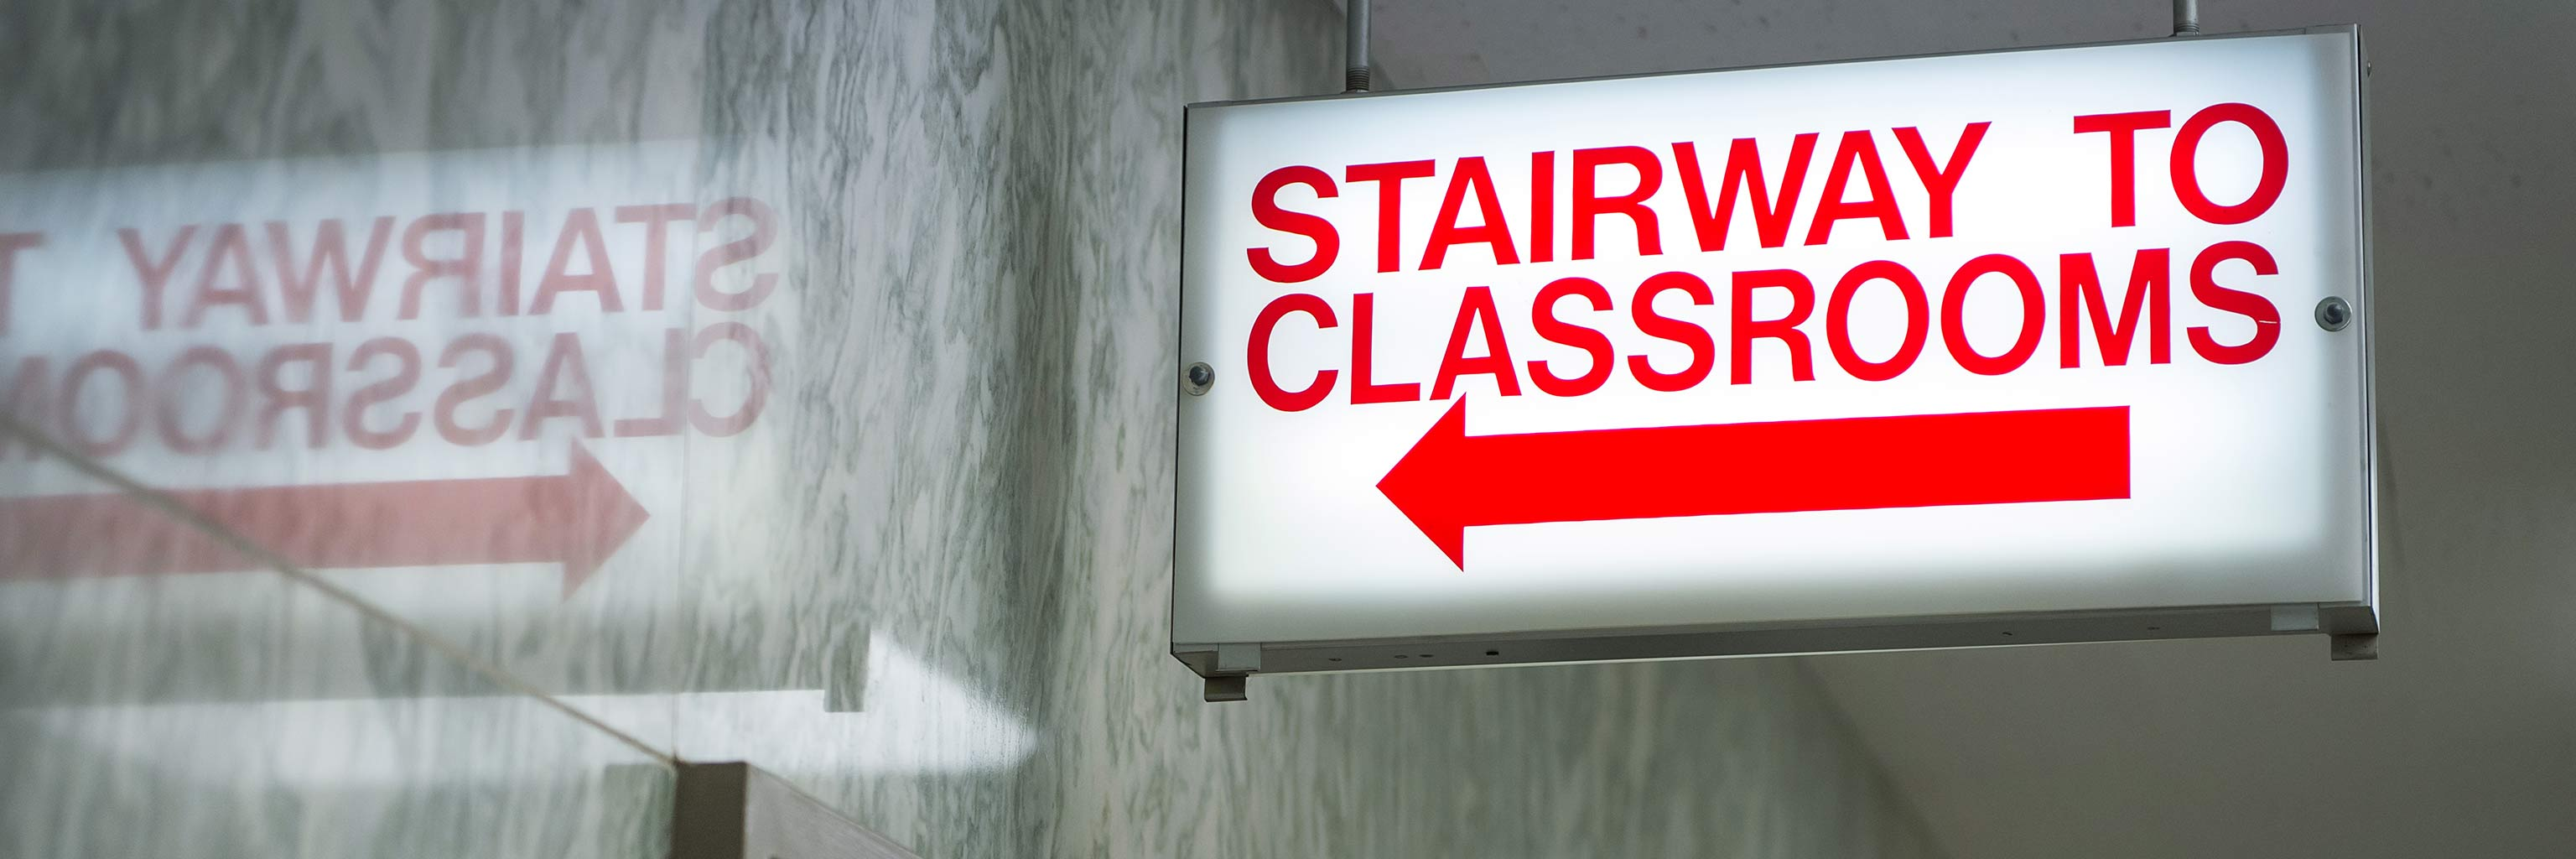 light up sign that says stairway to classrooms